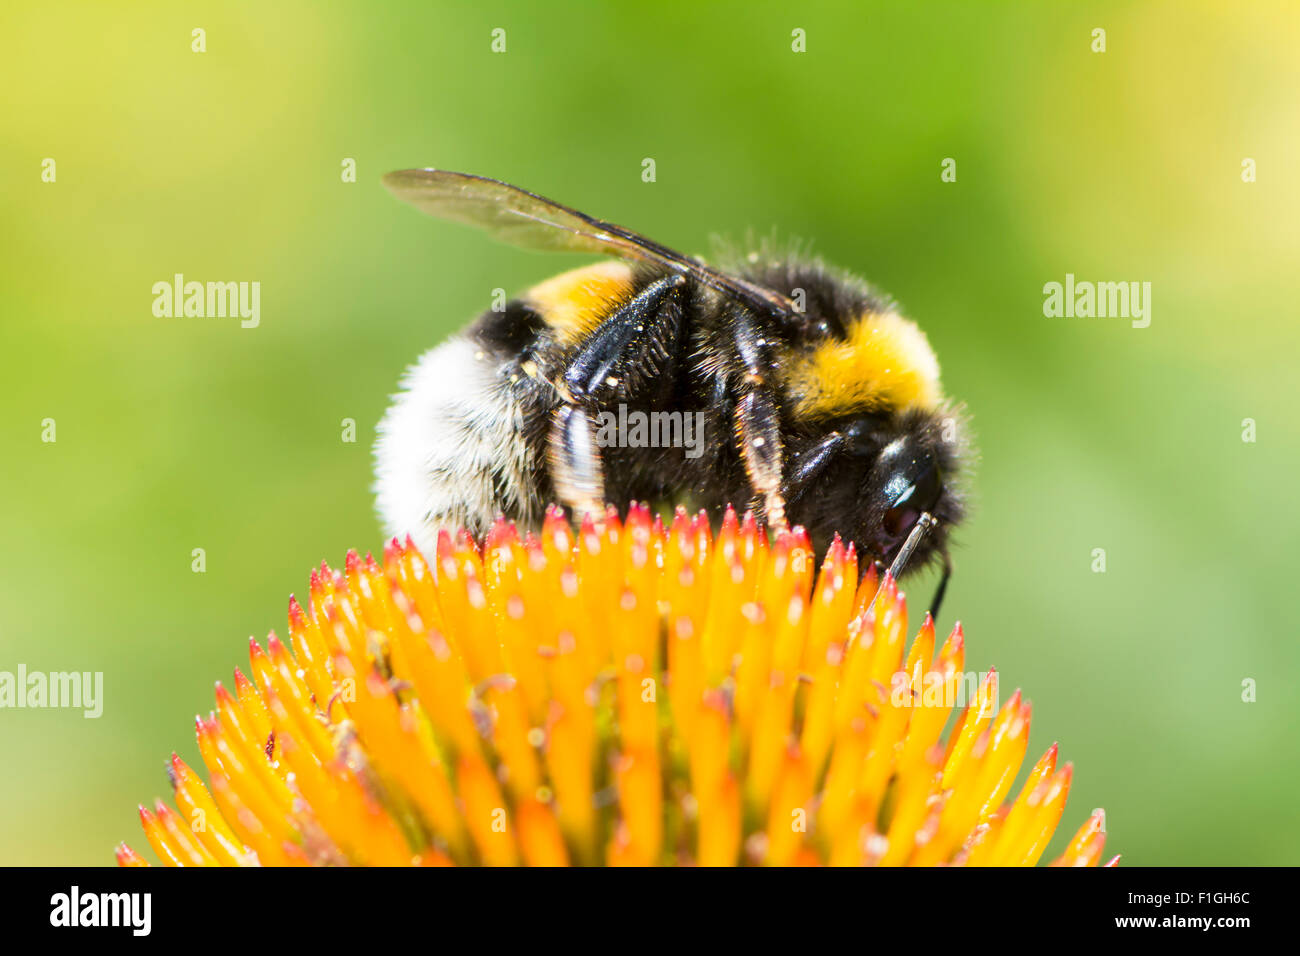 Macro of a bumblebee collecting nectar on Echinacea flower - Stock Image